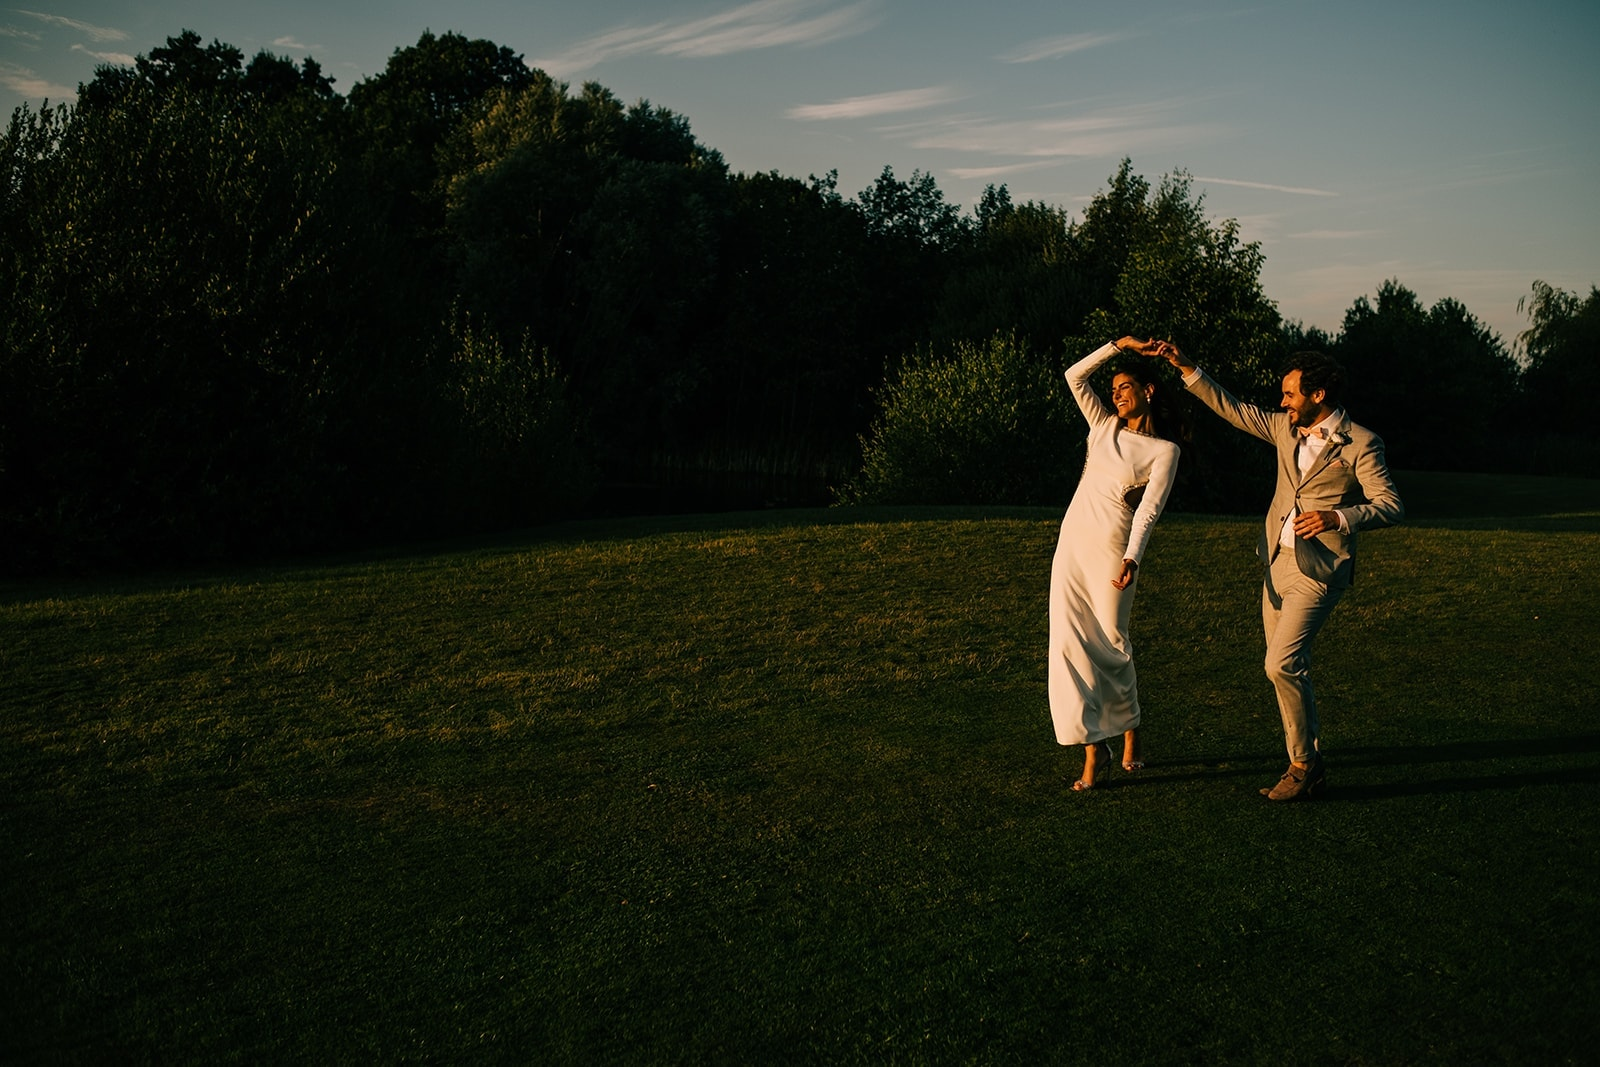 Natali & Alex dancing in the gorgeous sunset